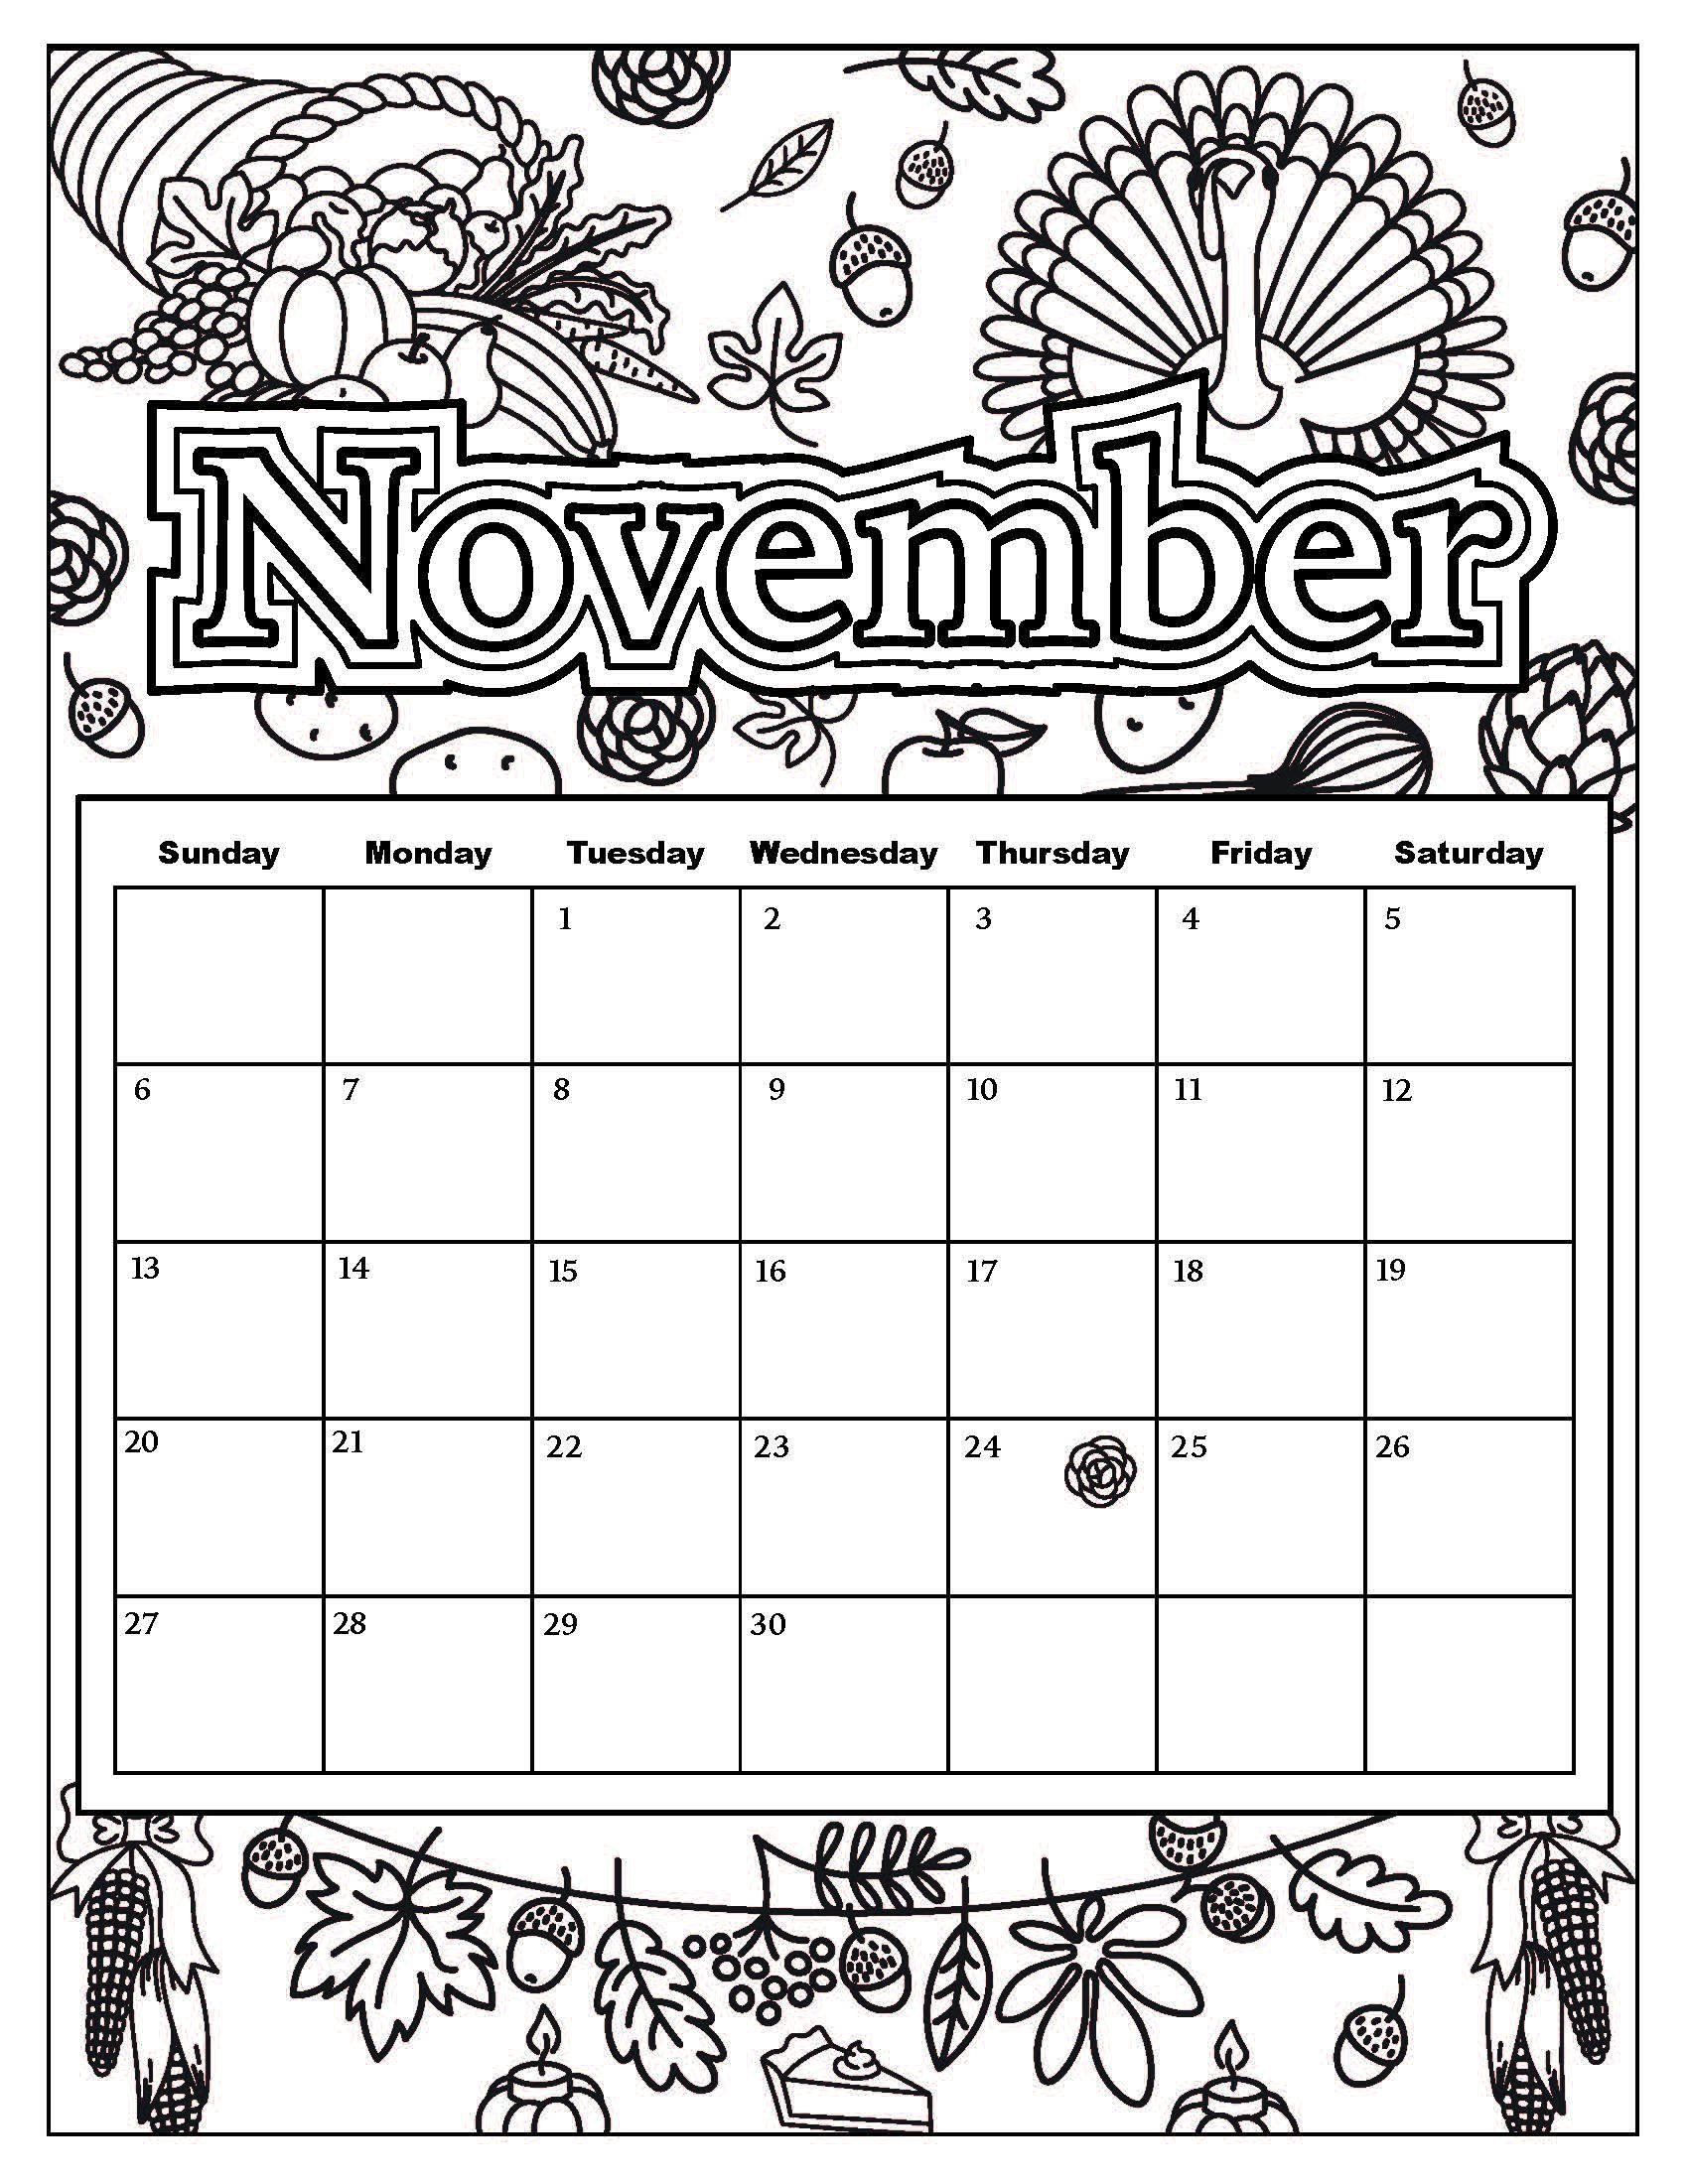 Free Download Coloring Pages From Popular Adult Coloring Books